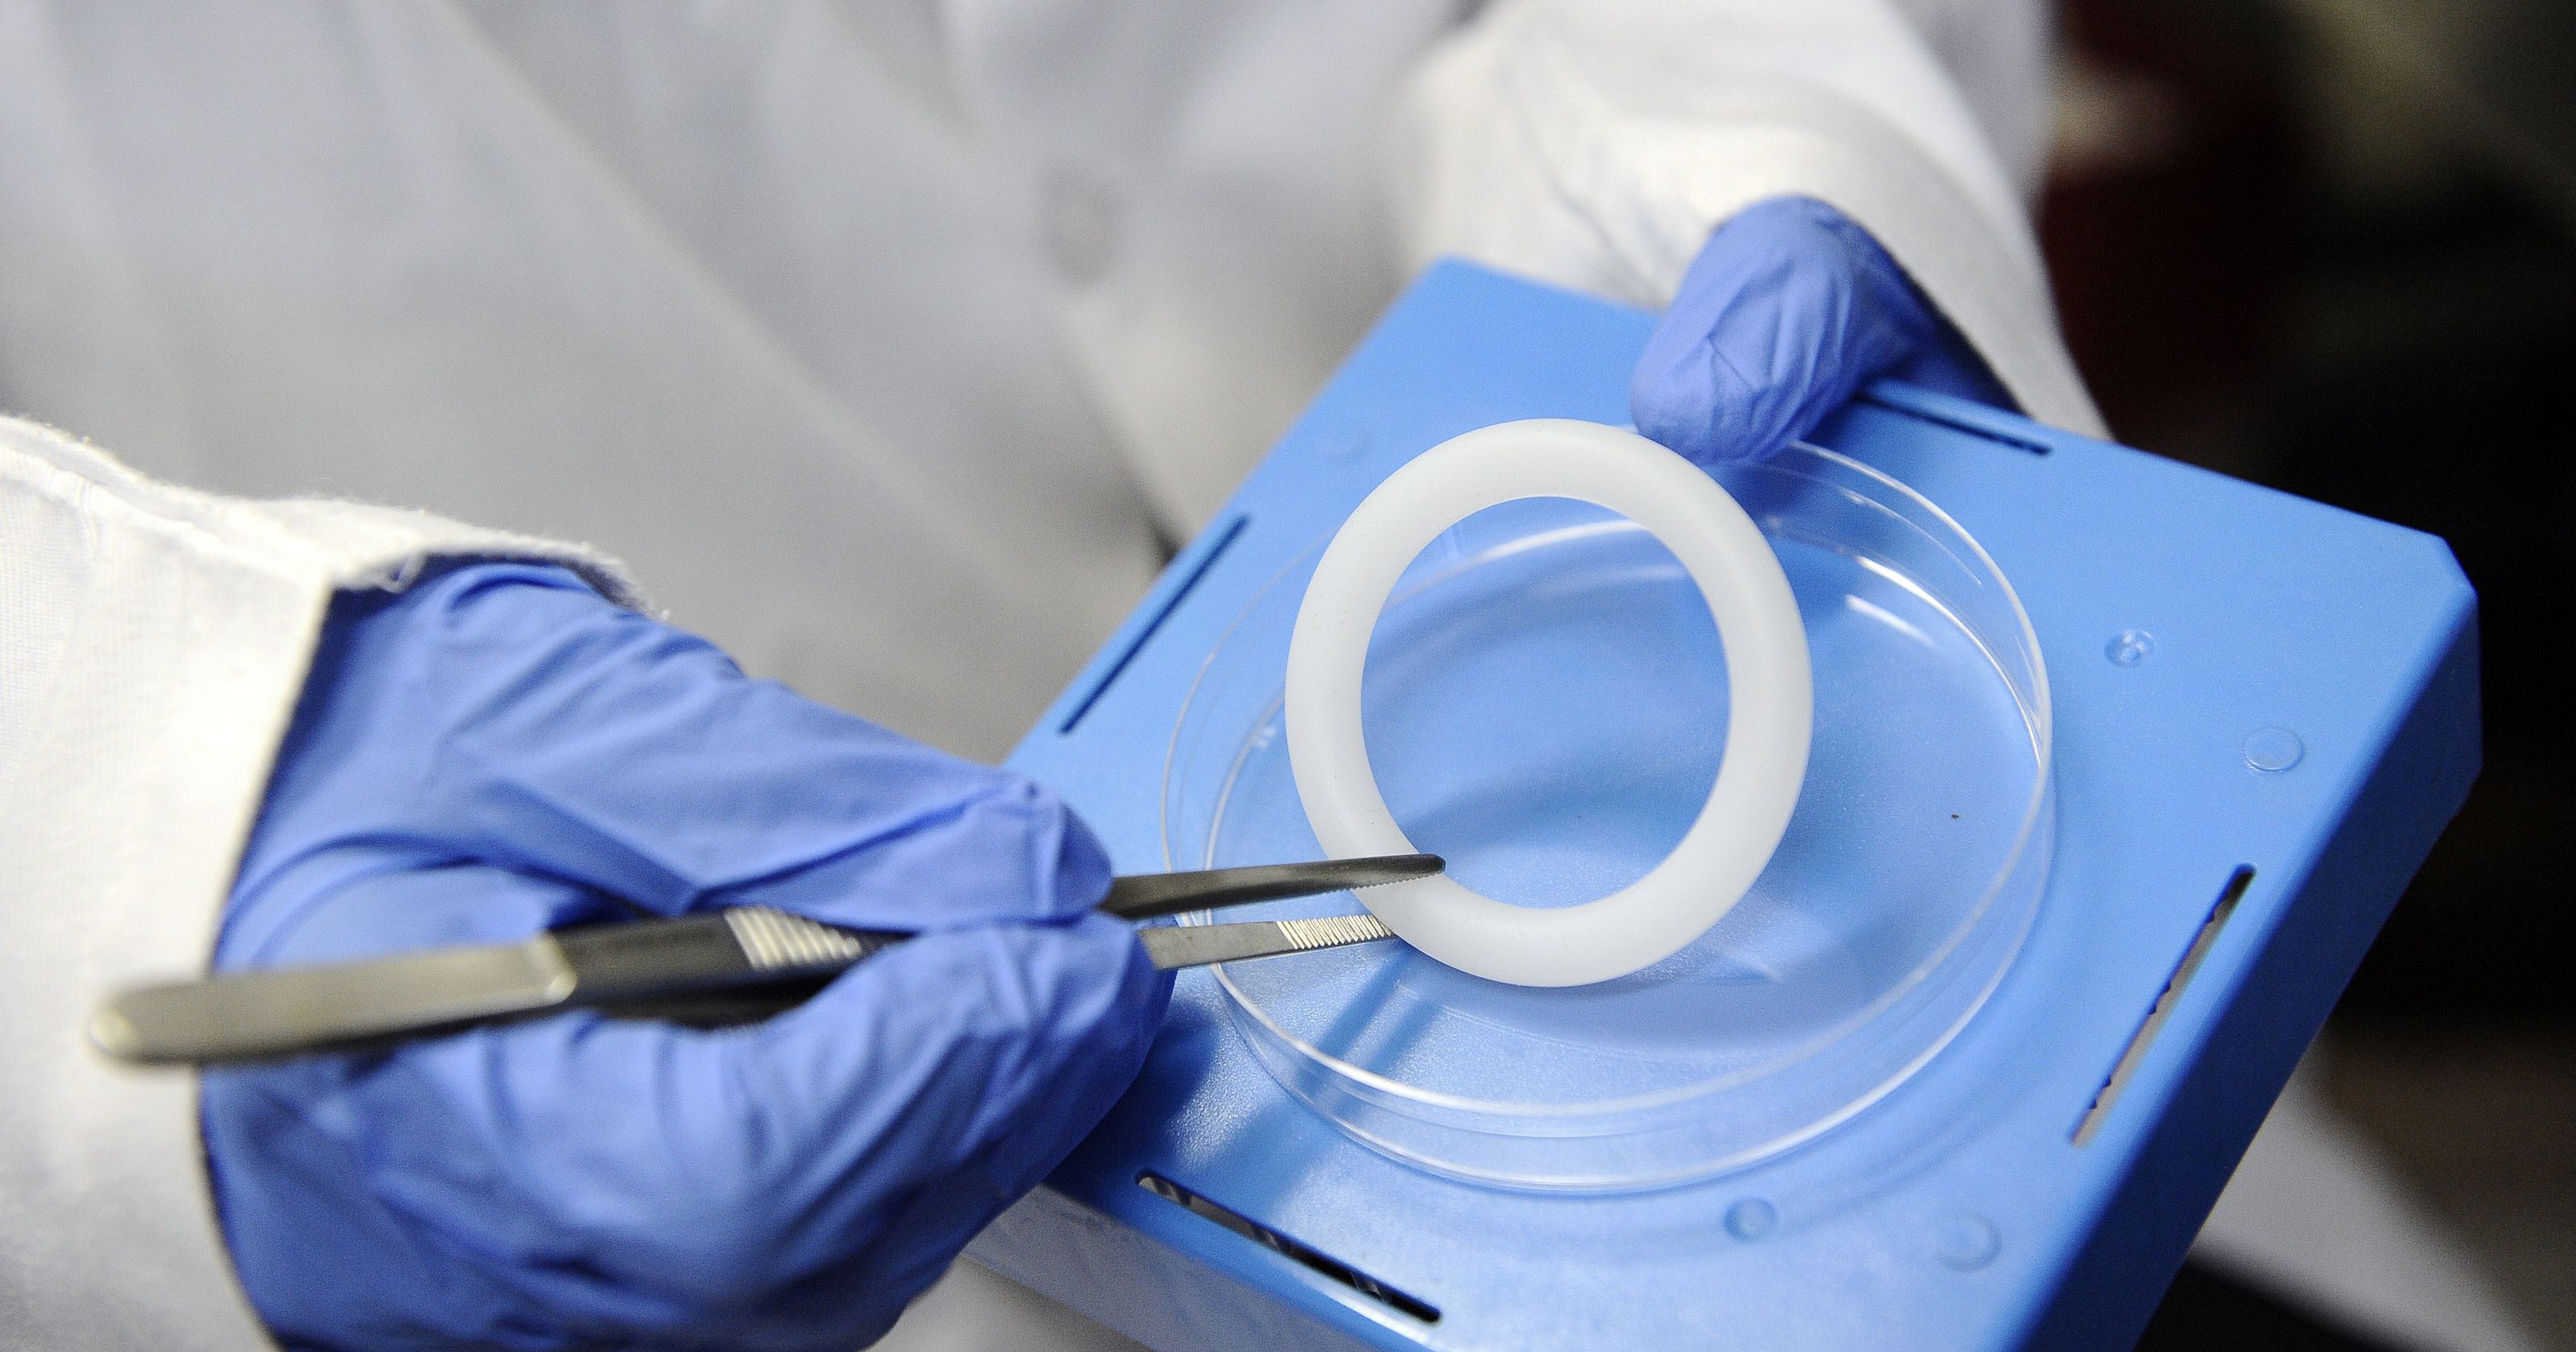 Vaginal rings can prevent HIV in African countries where traditional methods have failed - Ventures Africa